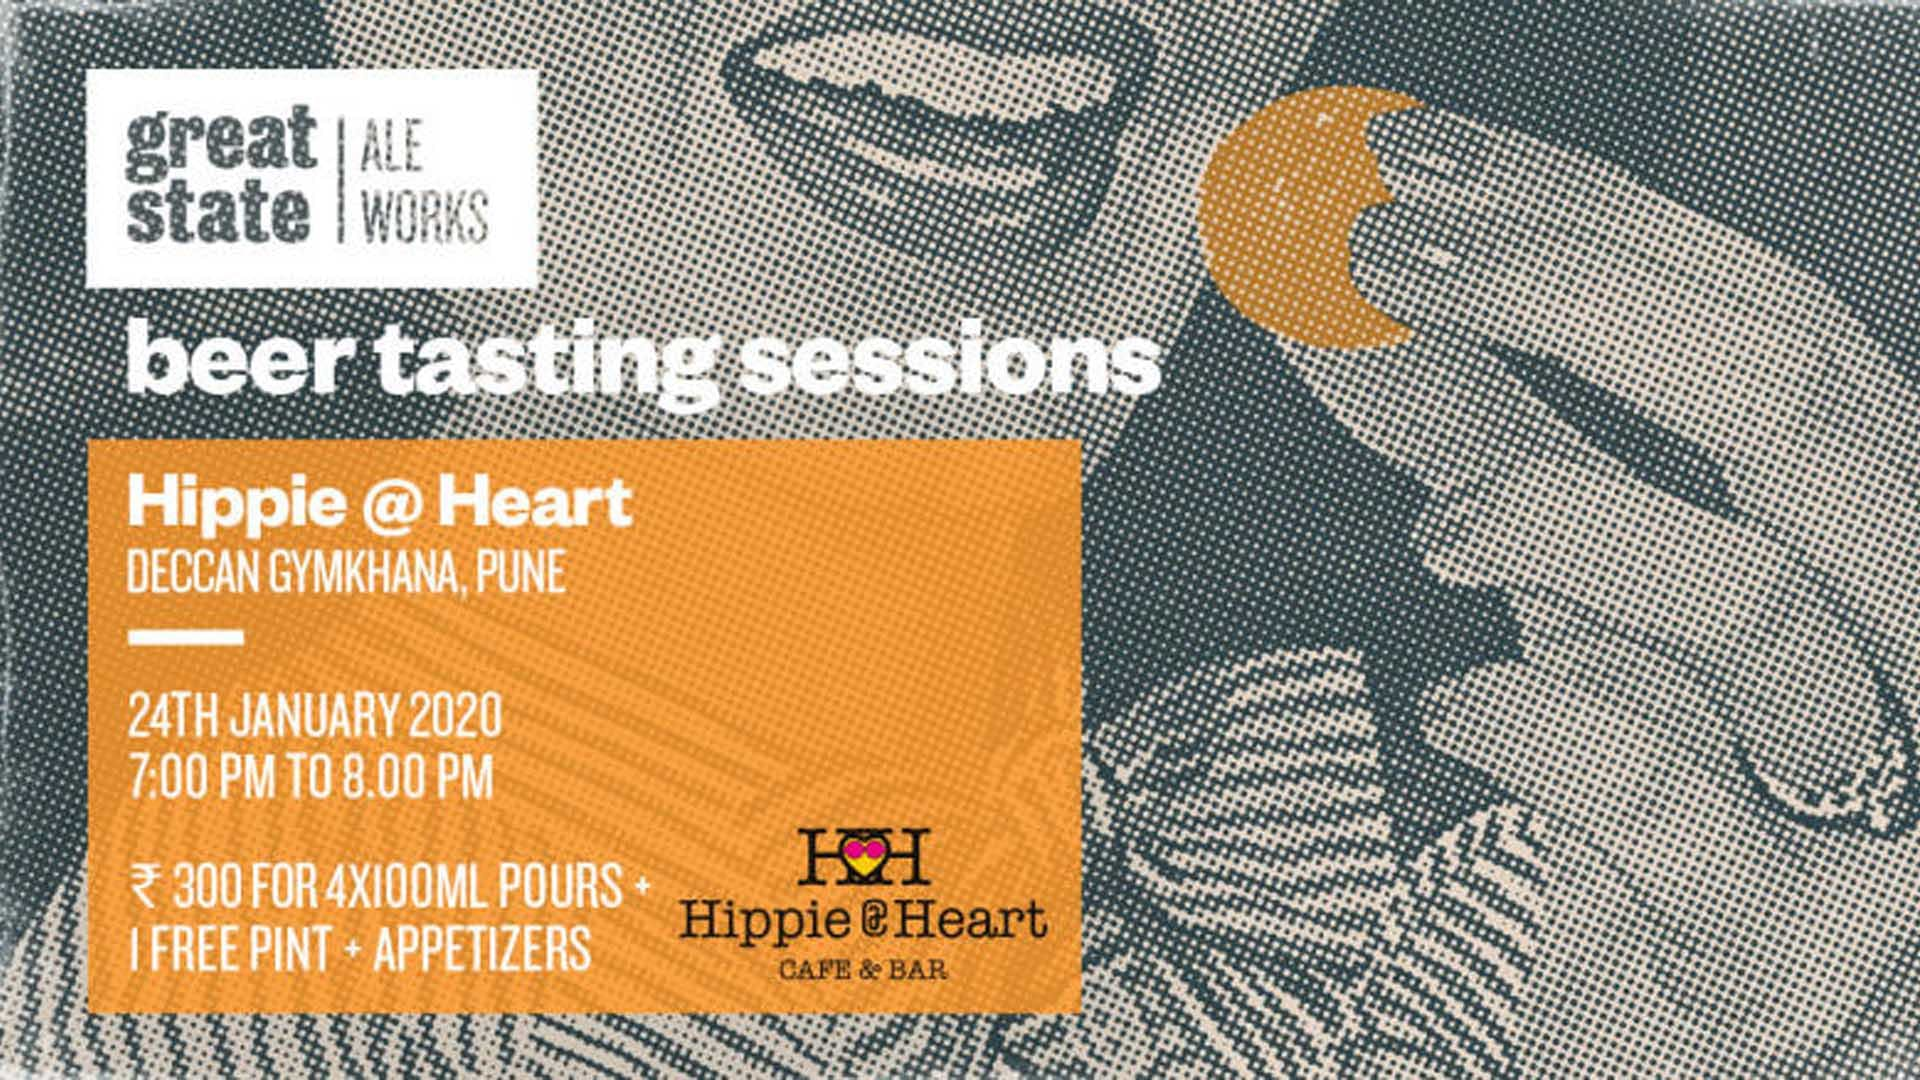 image - Beer Tasting Session at Hippie@Heart, Deccan